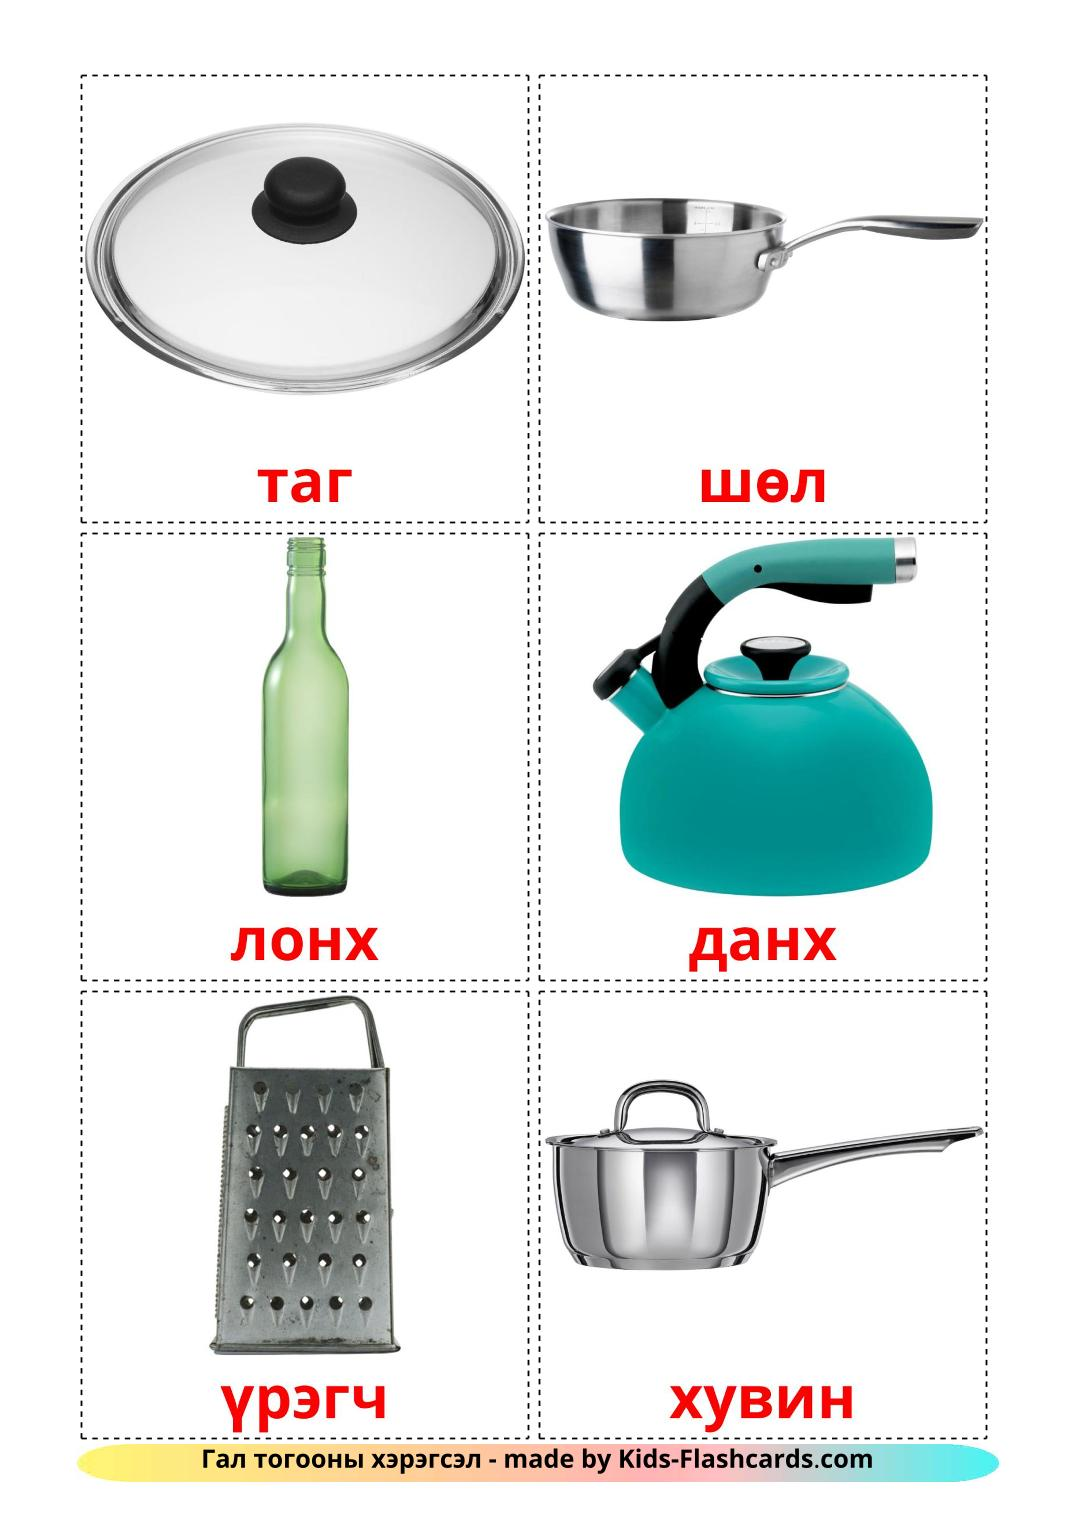 Kitchenware picture cards for Kindergarden in mongolian